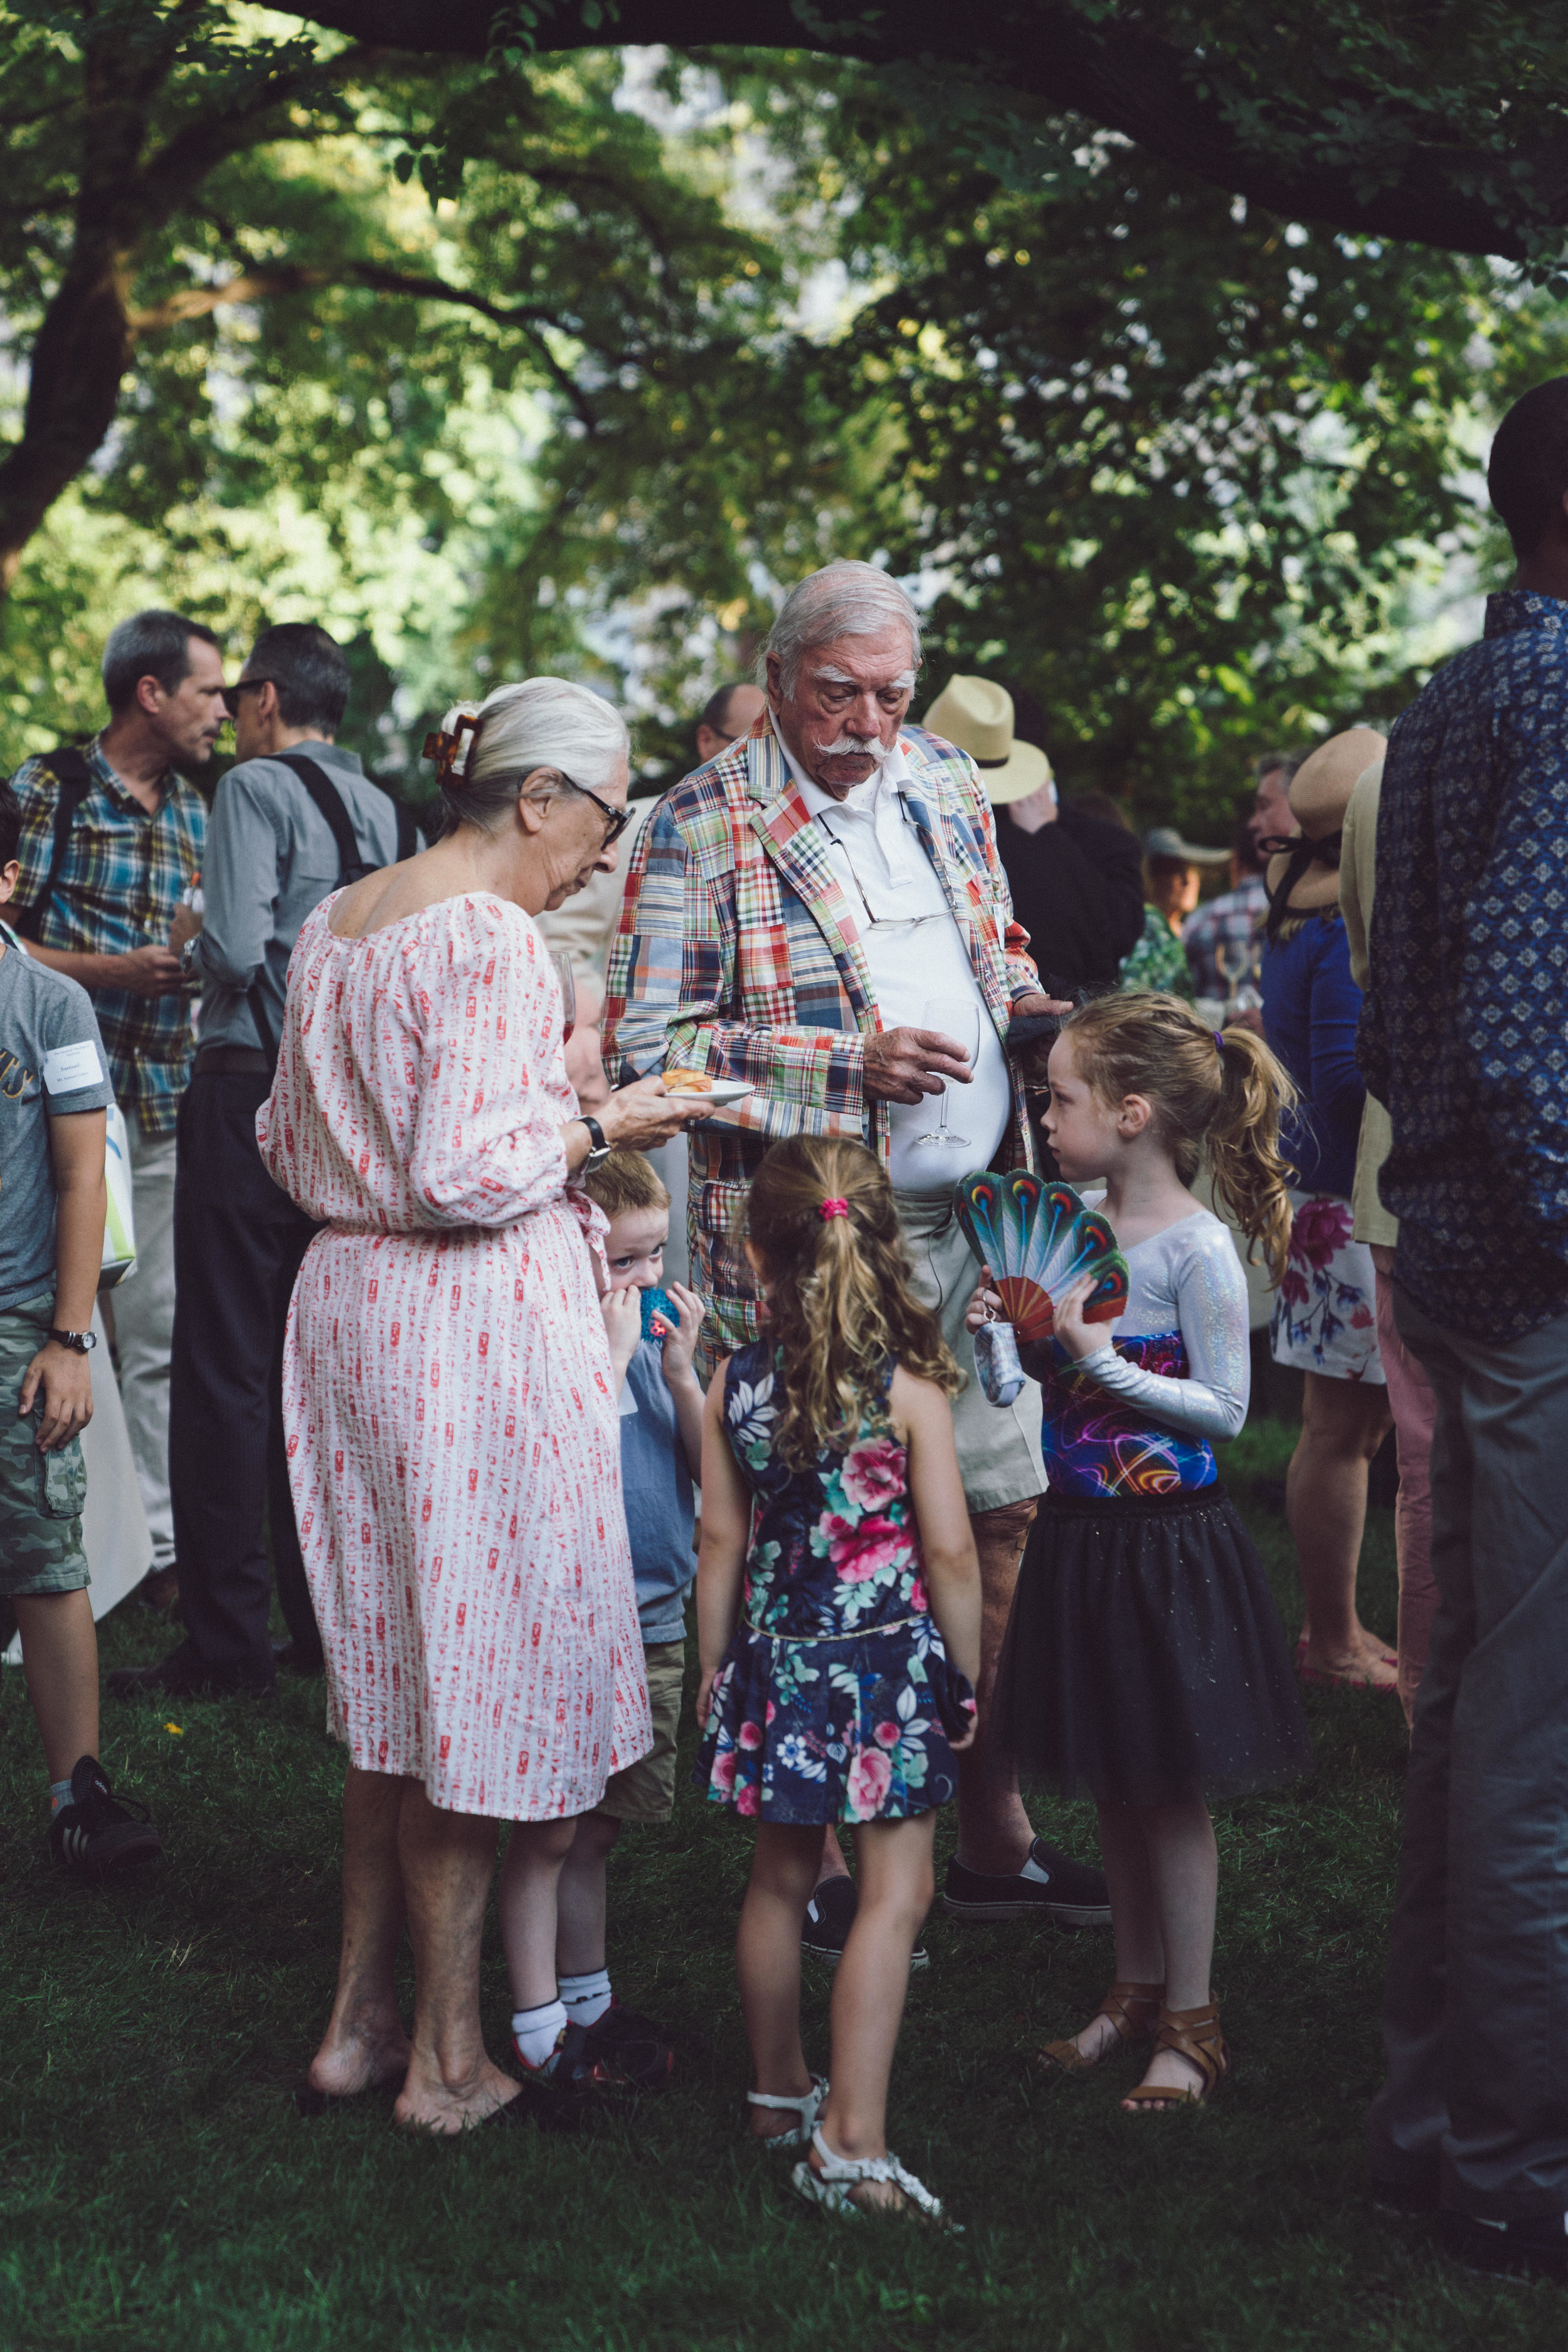 Attendees of The General Seminary's Annual Garden Party. Photo by Daniel Lee